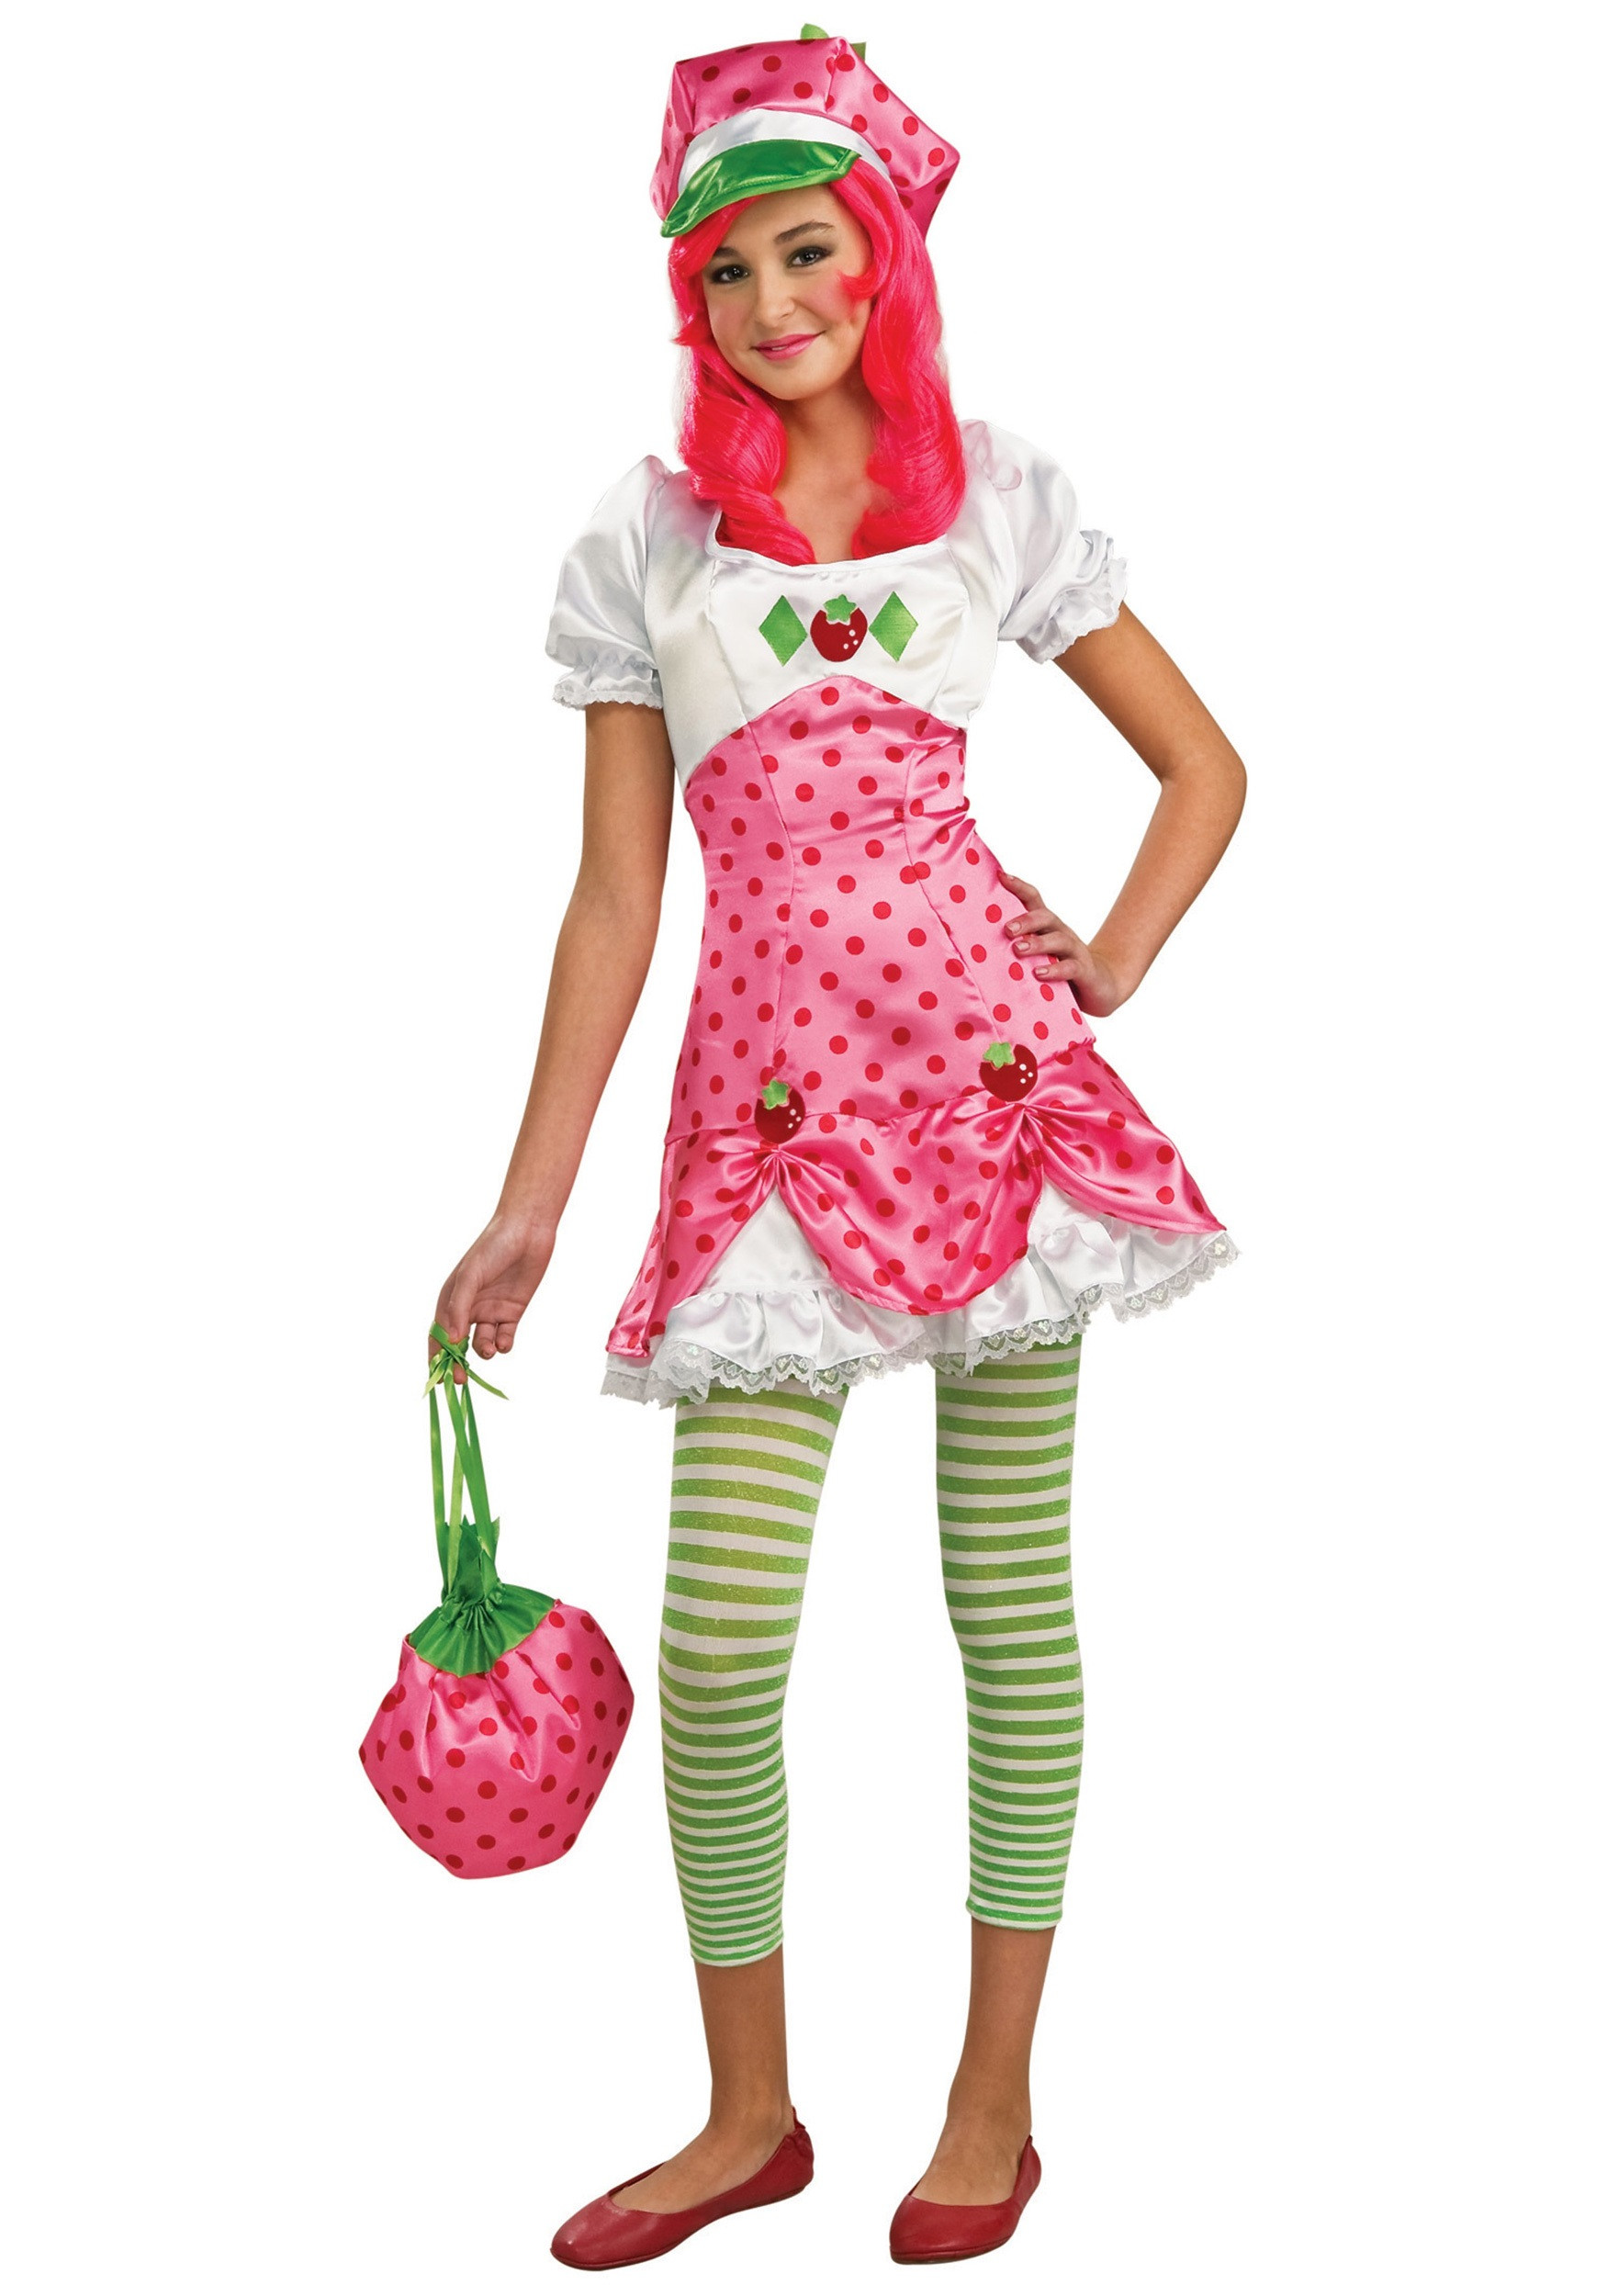 Strawberry Shortcake Halloween Costume  Deluxe Strawberry Shortcake Costume Strawberry Shortcake